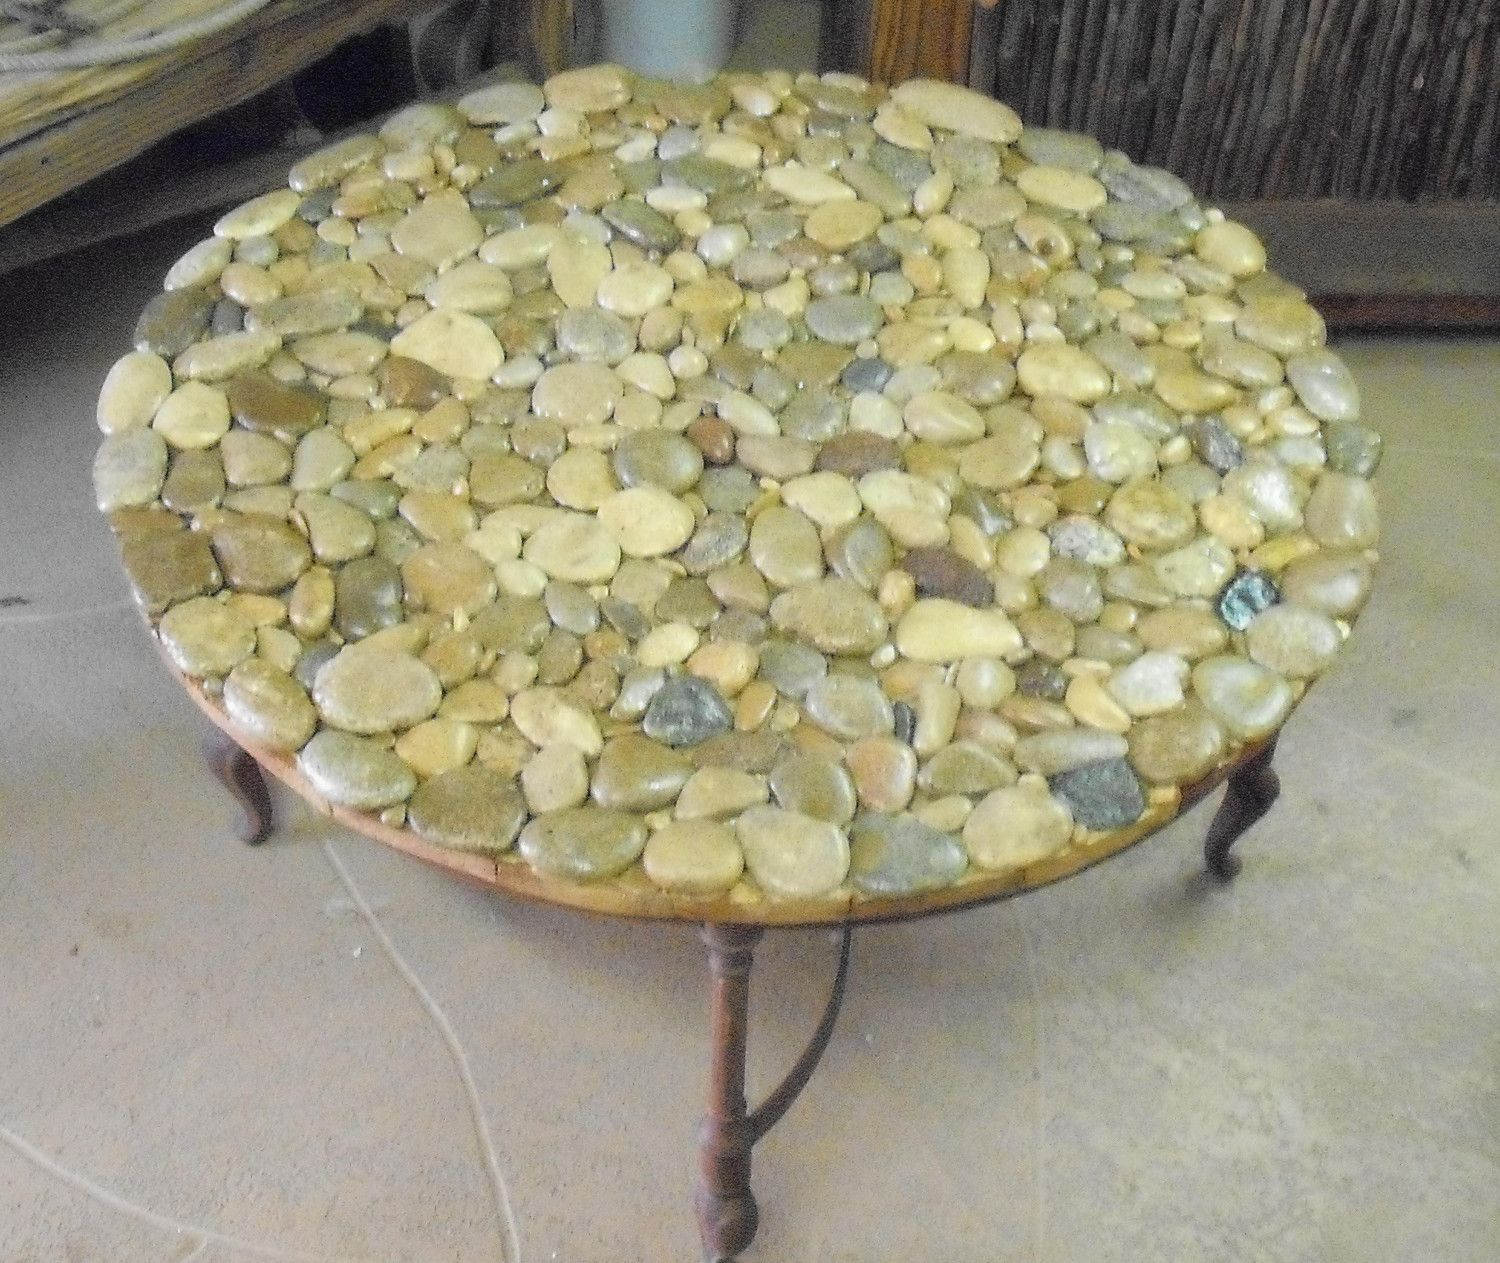 River Rock Coffee Table - Plaster Faux Rock Coffee Table By Sirmos Cocktails, Furniture